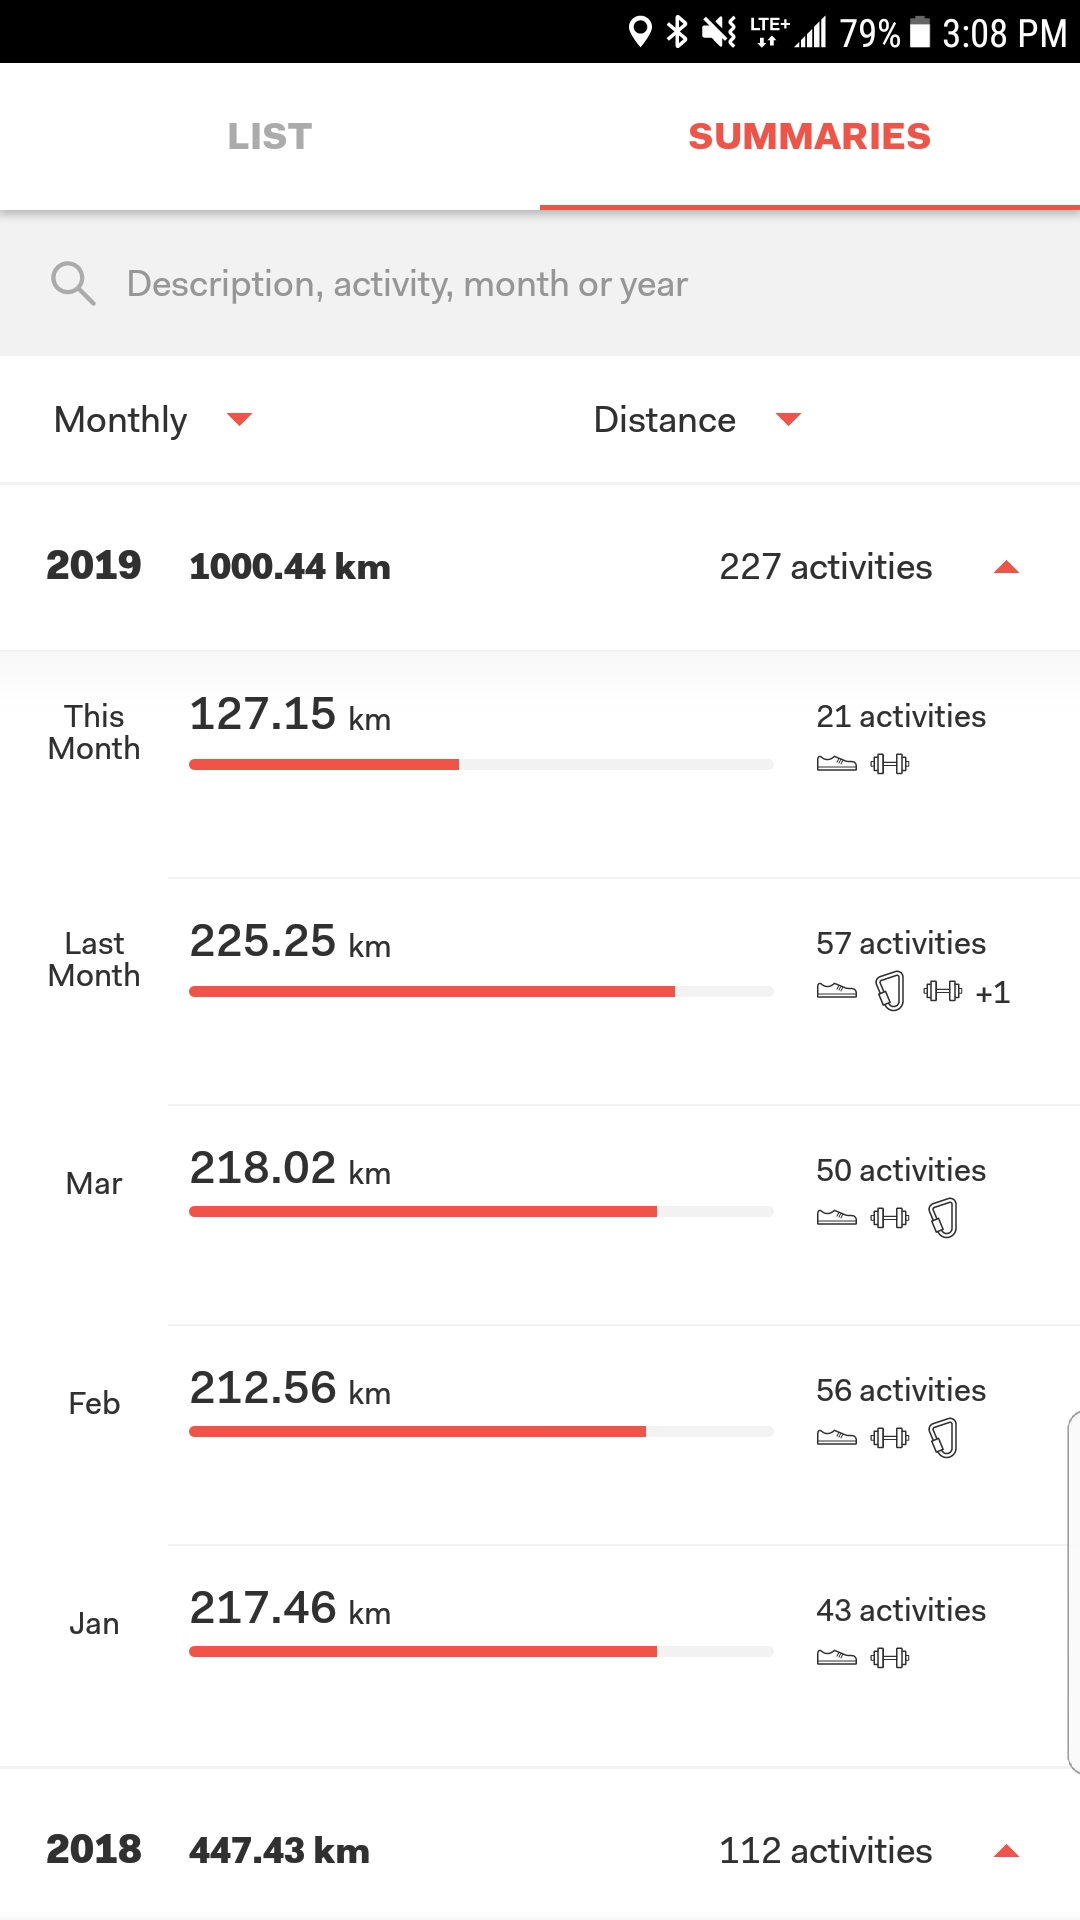 [Image] I've walked 1000 KM's (621 miles) so far in 2019. I'm on track to reach my goal of walking 2500 KM's (1553 miles) in 2019! I hope this motivates you.